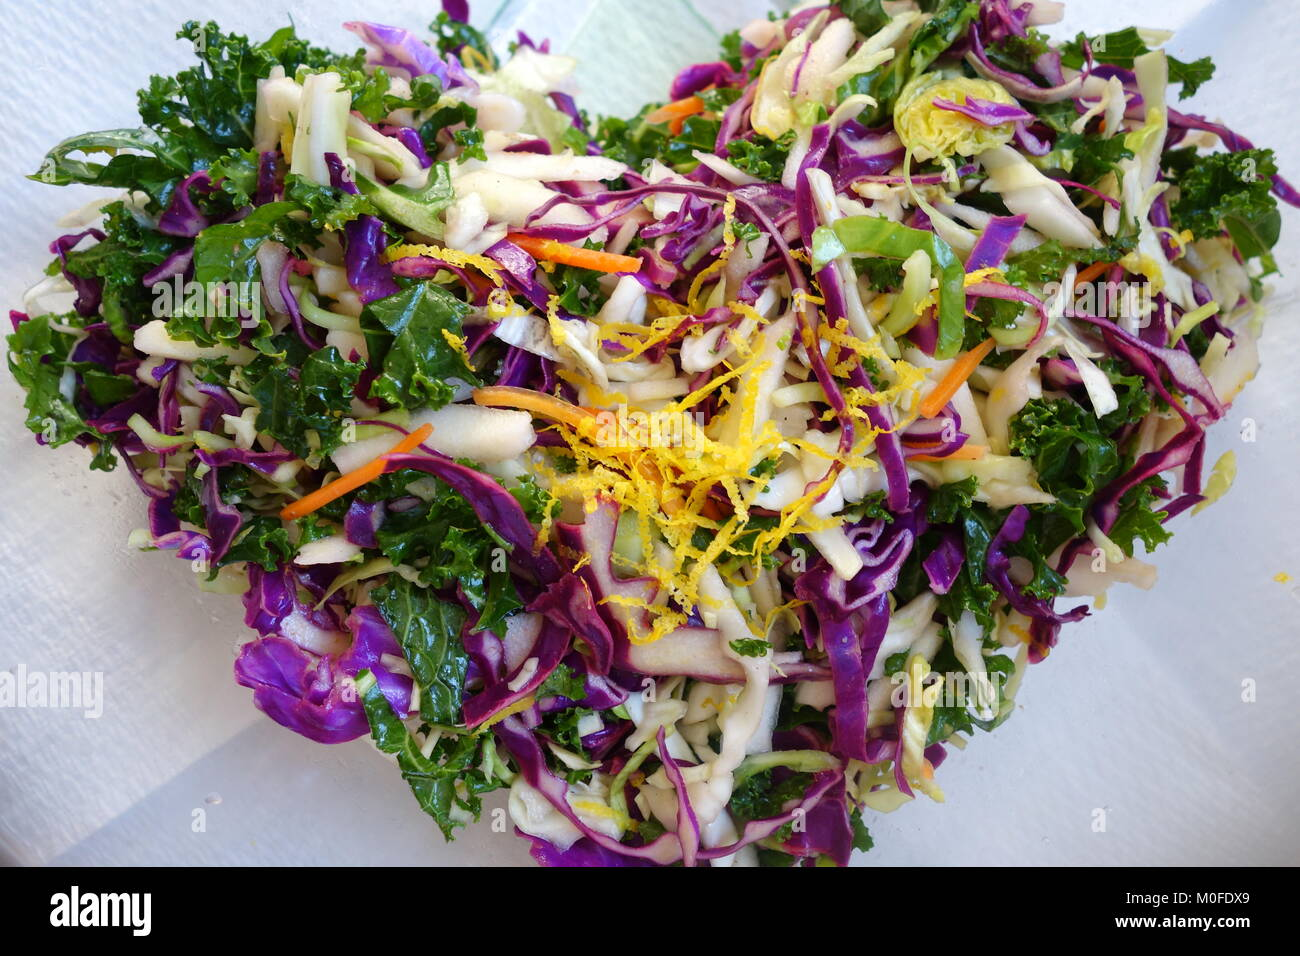 Heart shaped colorful mixed vegetables - Stock Image